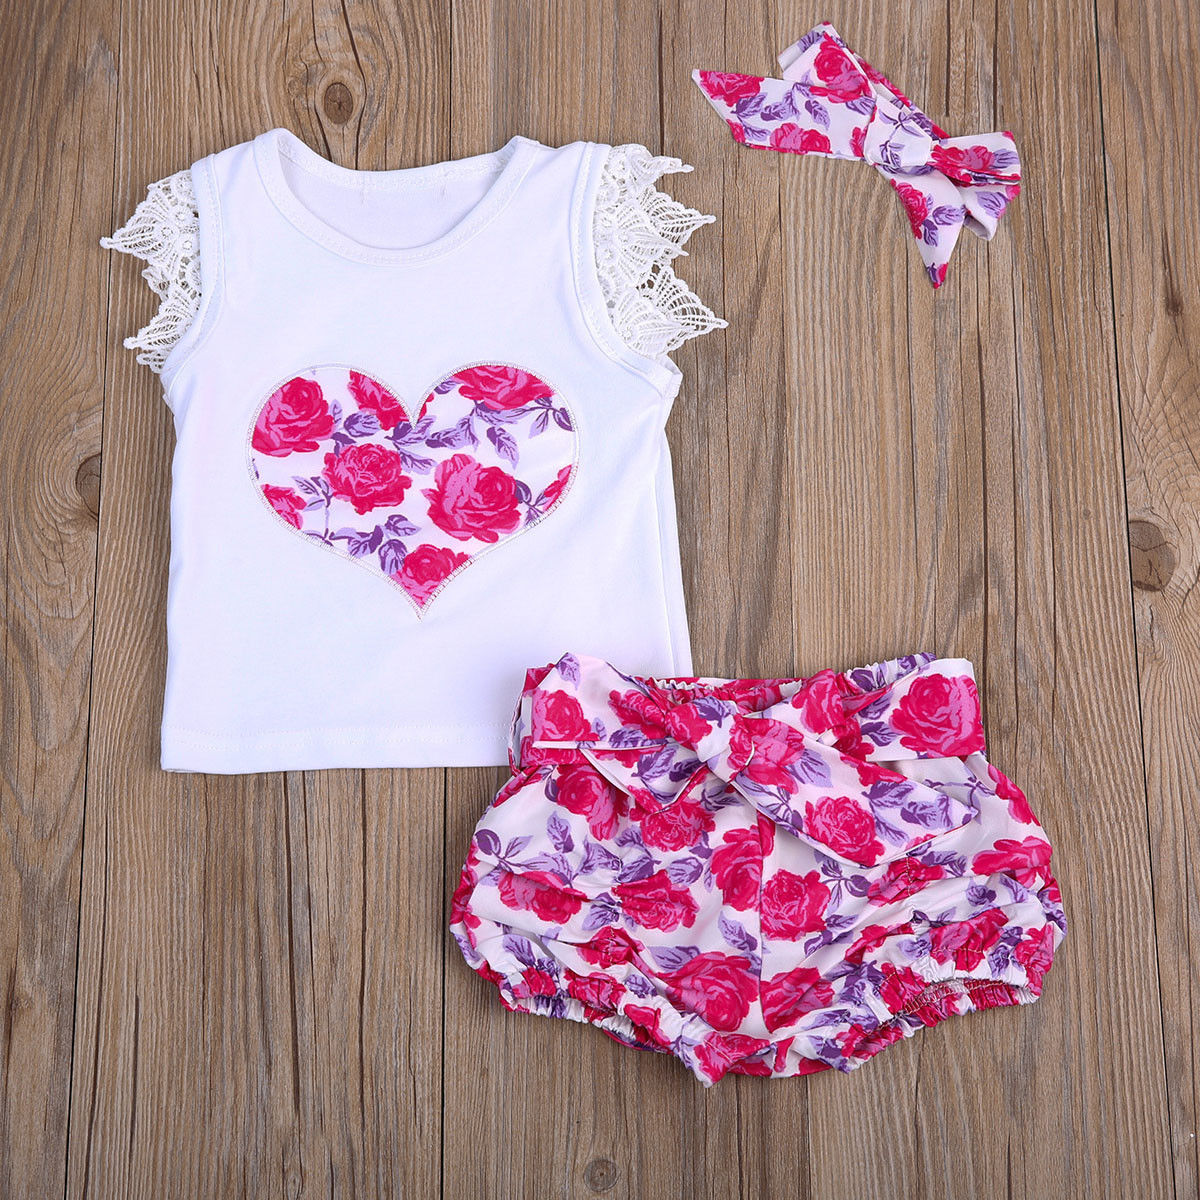 Clothing Sets Newborn Kids Baby Girls Long Sleeve Lace Tops T-shirt+print Shorts Bottoms Headband 3pcs Outfits Clothes Set Children Clothing Girls' Baby Clothing